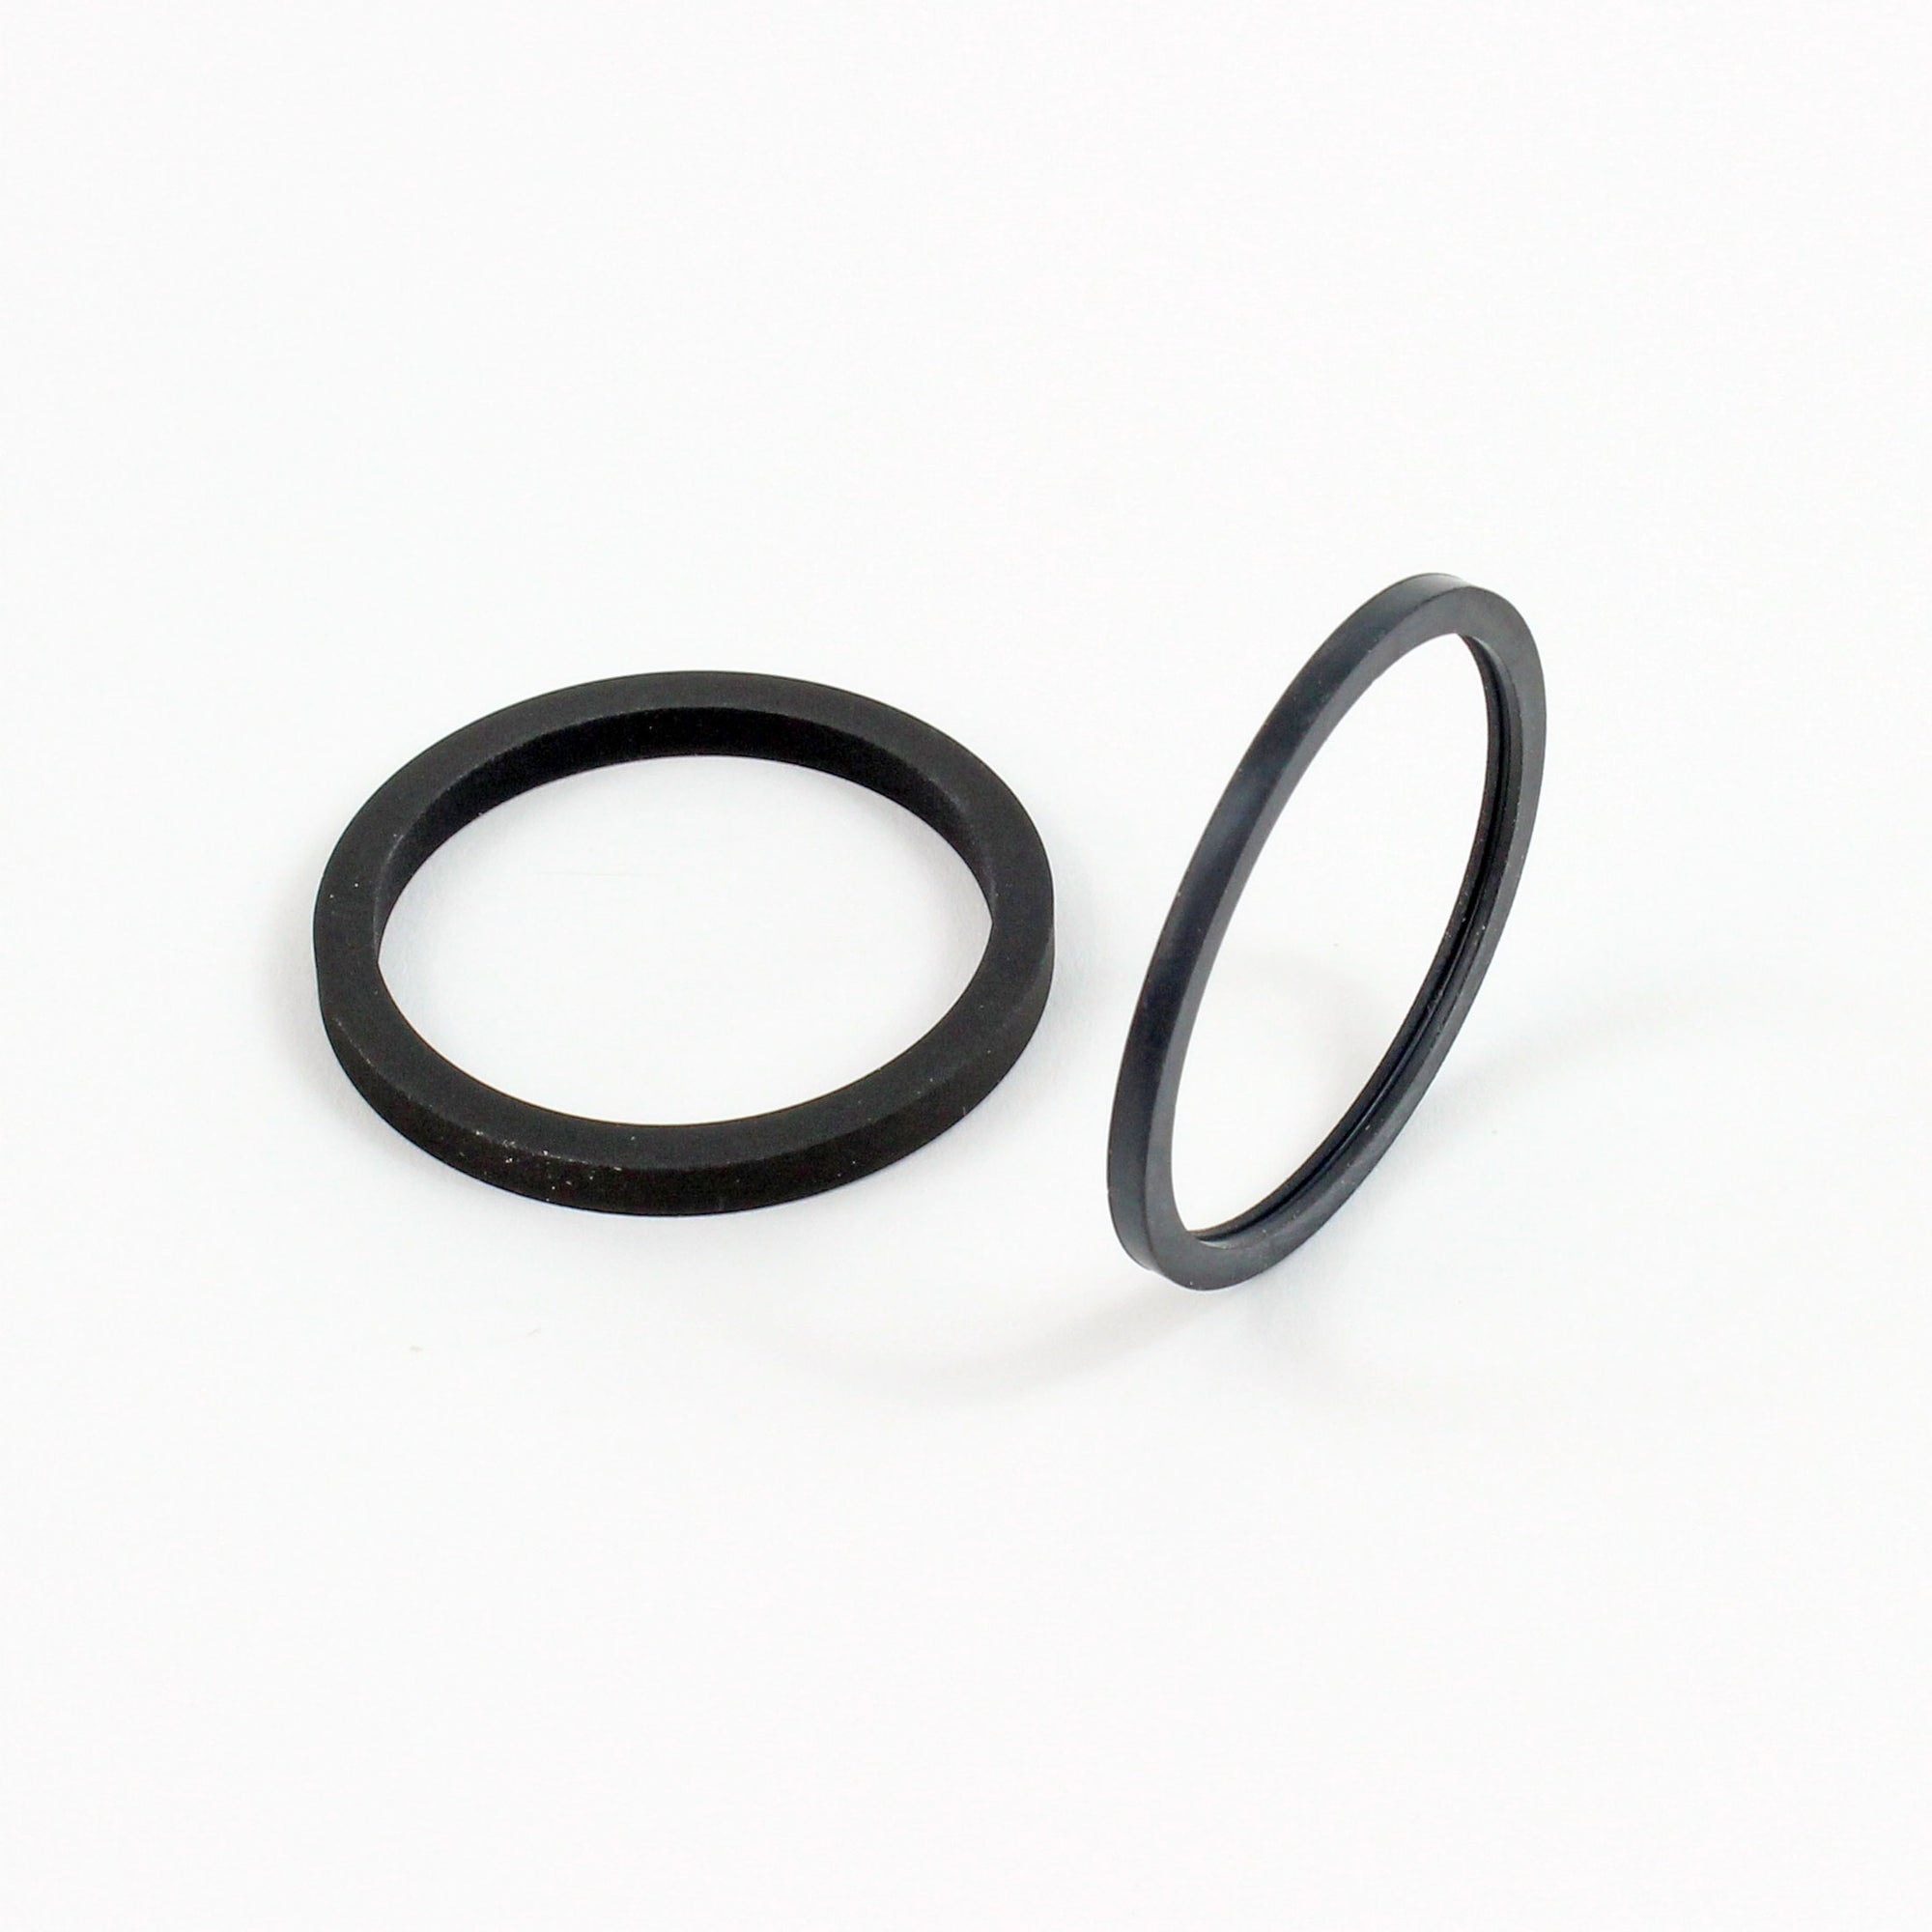 Internal Diameter (I.D) 32mm - Motorcycle Brake Caliper Seal set (Pressure seal - Dust Seal)